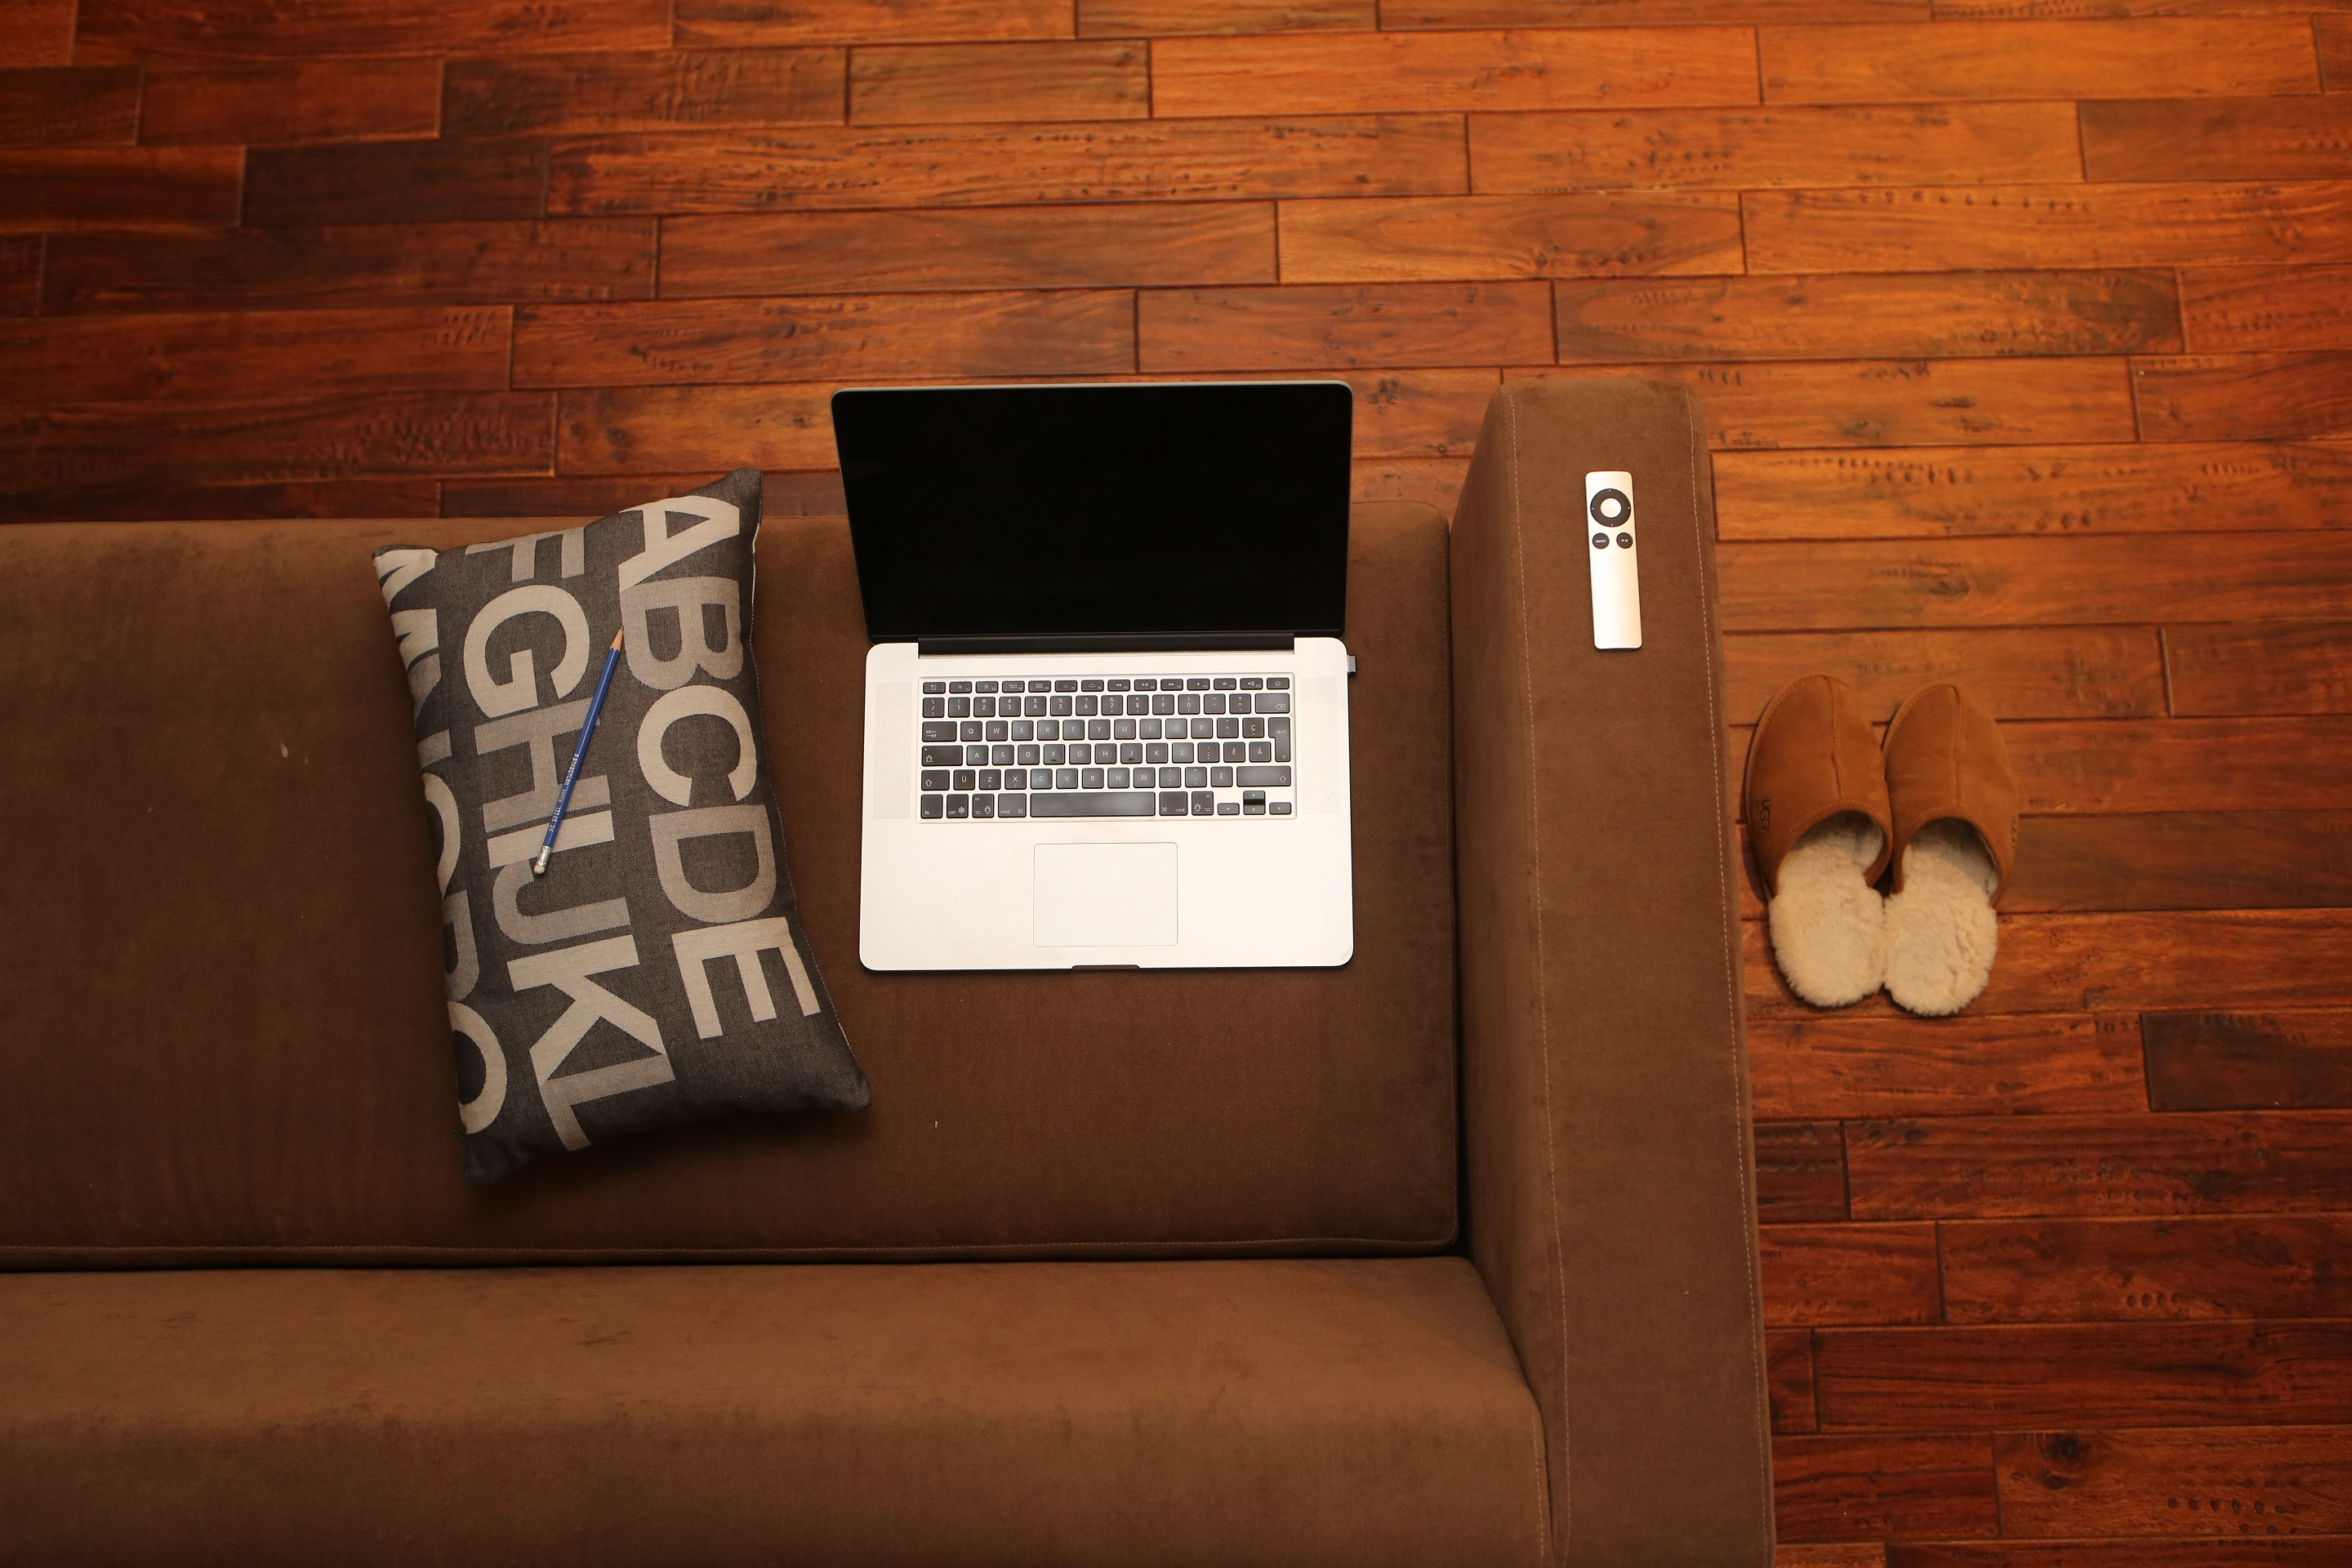 2014-12-Life-of-Pix-free-stock-photos-relax-labtop-sofa-slippers-leeroy